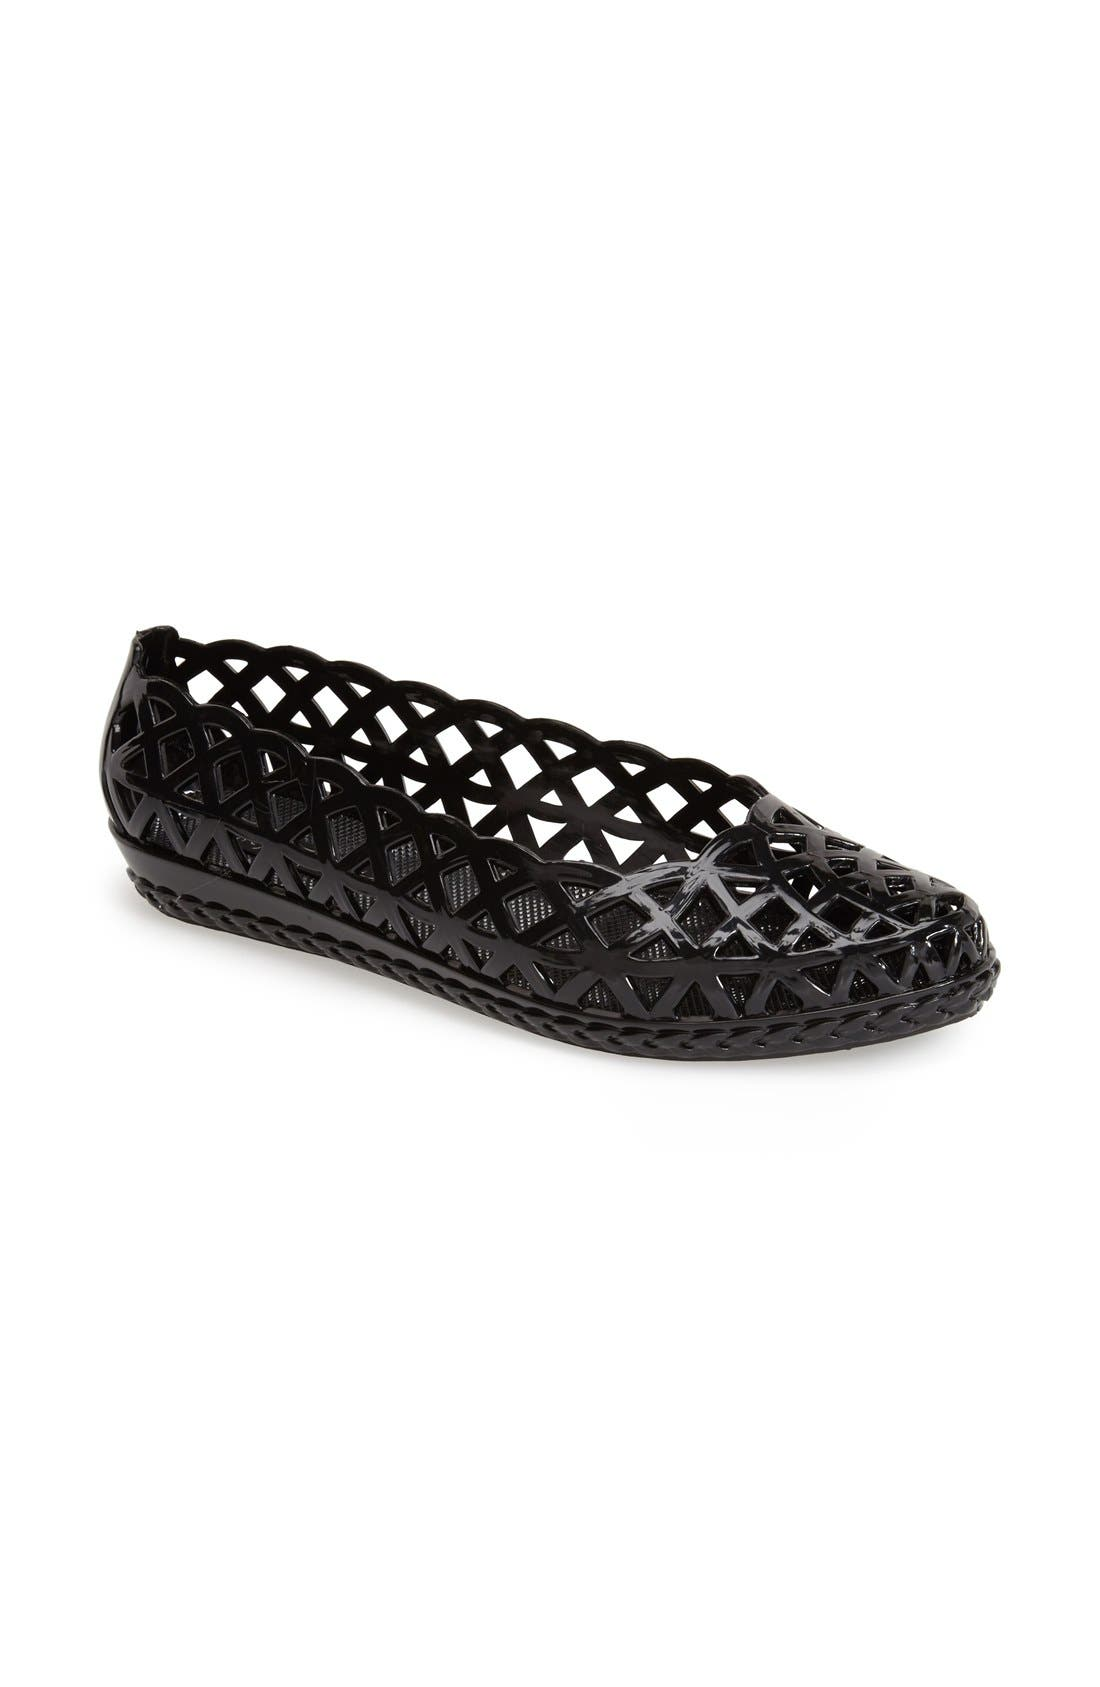 JEFFREY CAMPBELL, 'Jelly-Jam' Slip-On Flat, Main thumbnail 1, color, 001